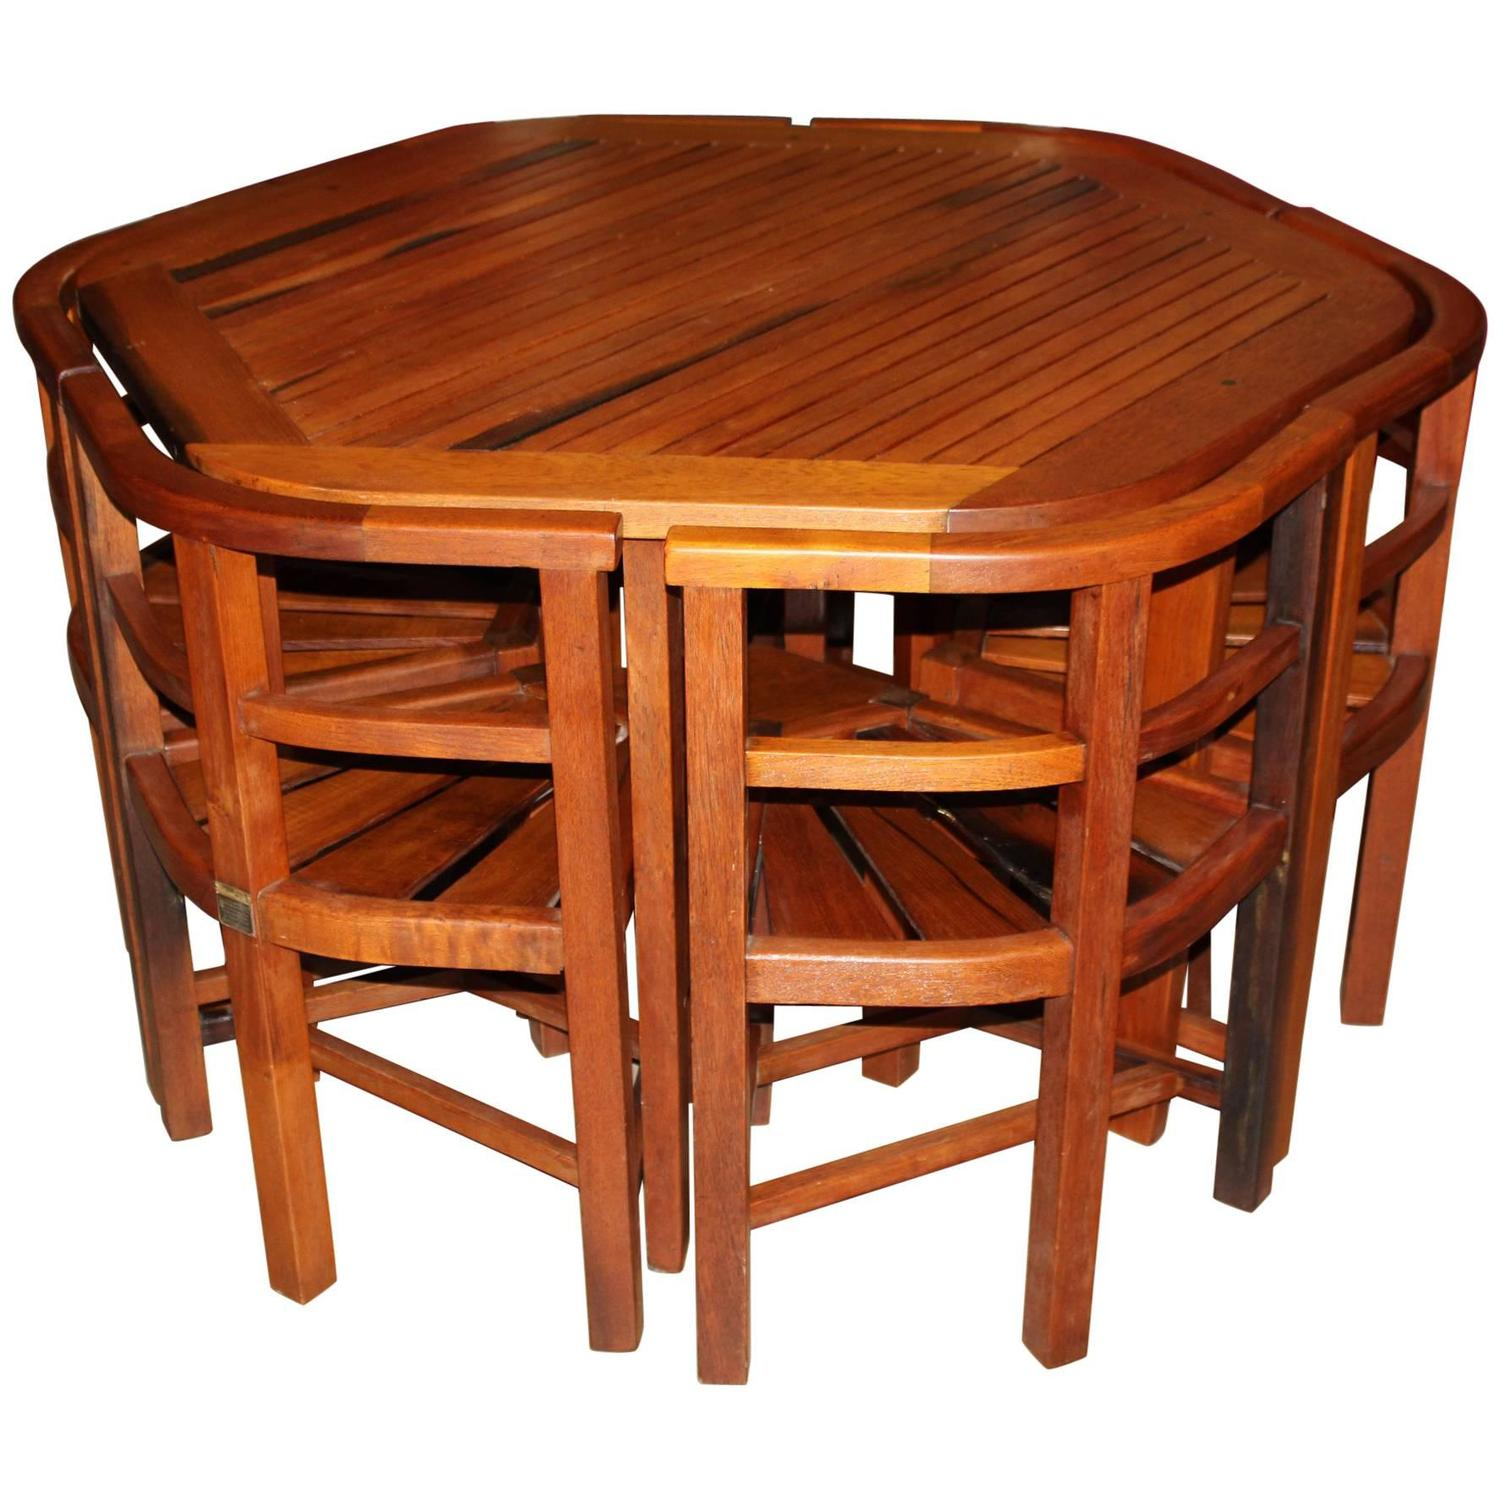 Teak Garden Table or Chair Set Made from Winston Churchill s Yacht